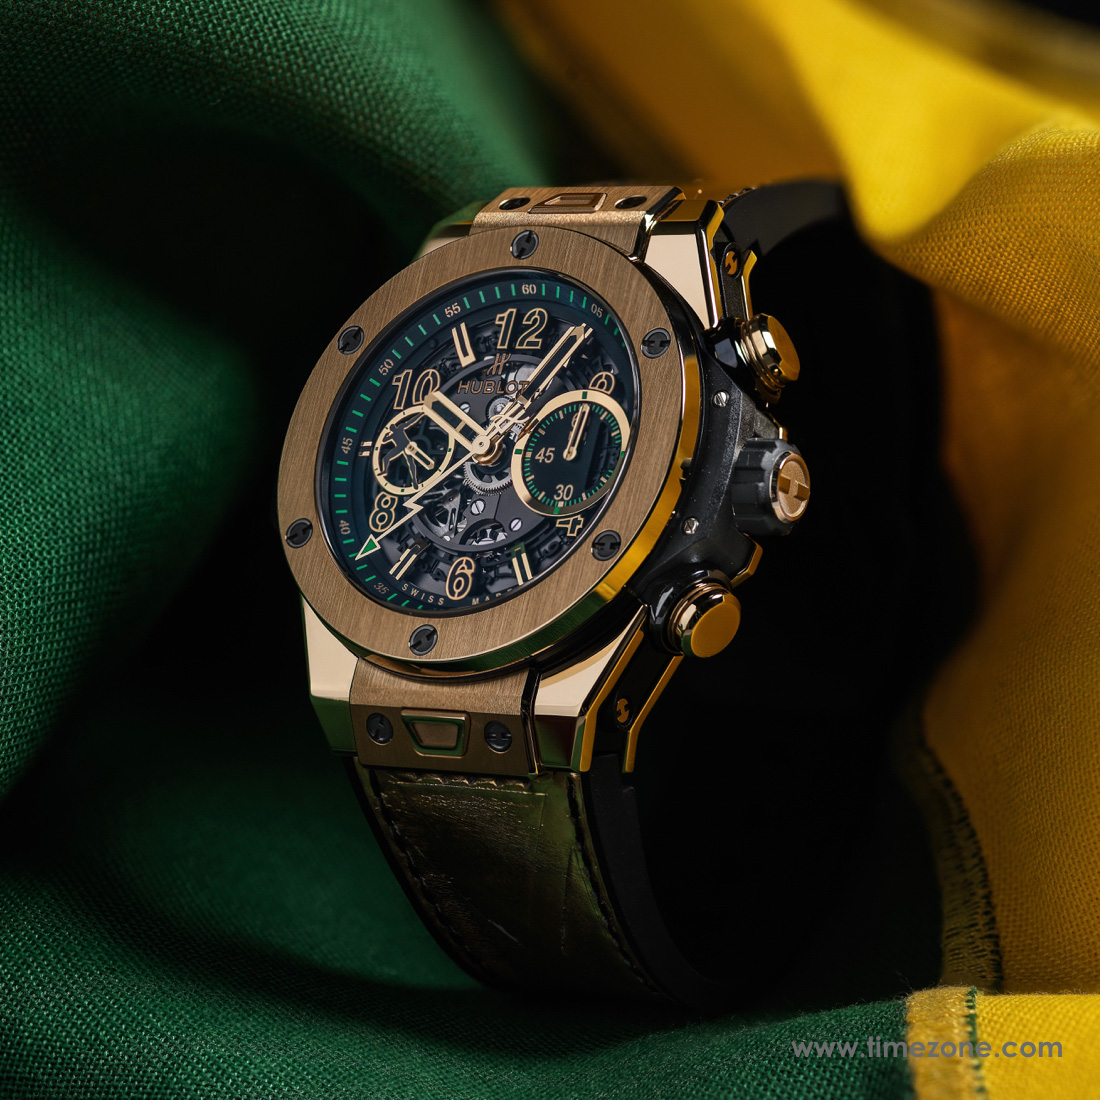 Hublot Big Bang UNICO Usain Bolt, BIG BANG UNICO USAIN BOLT YELLOW GOLD, 411.VX.1189.VR.USB16, BIG BANG UNICO USAIN BOLT CERAMIC, 411.CX.1189.VR.USB16